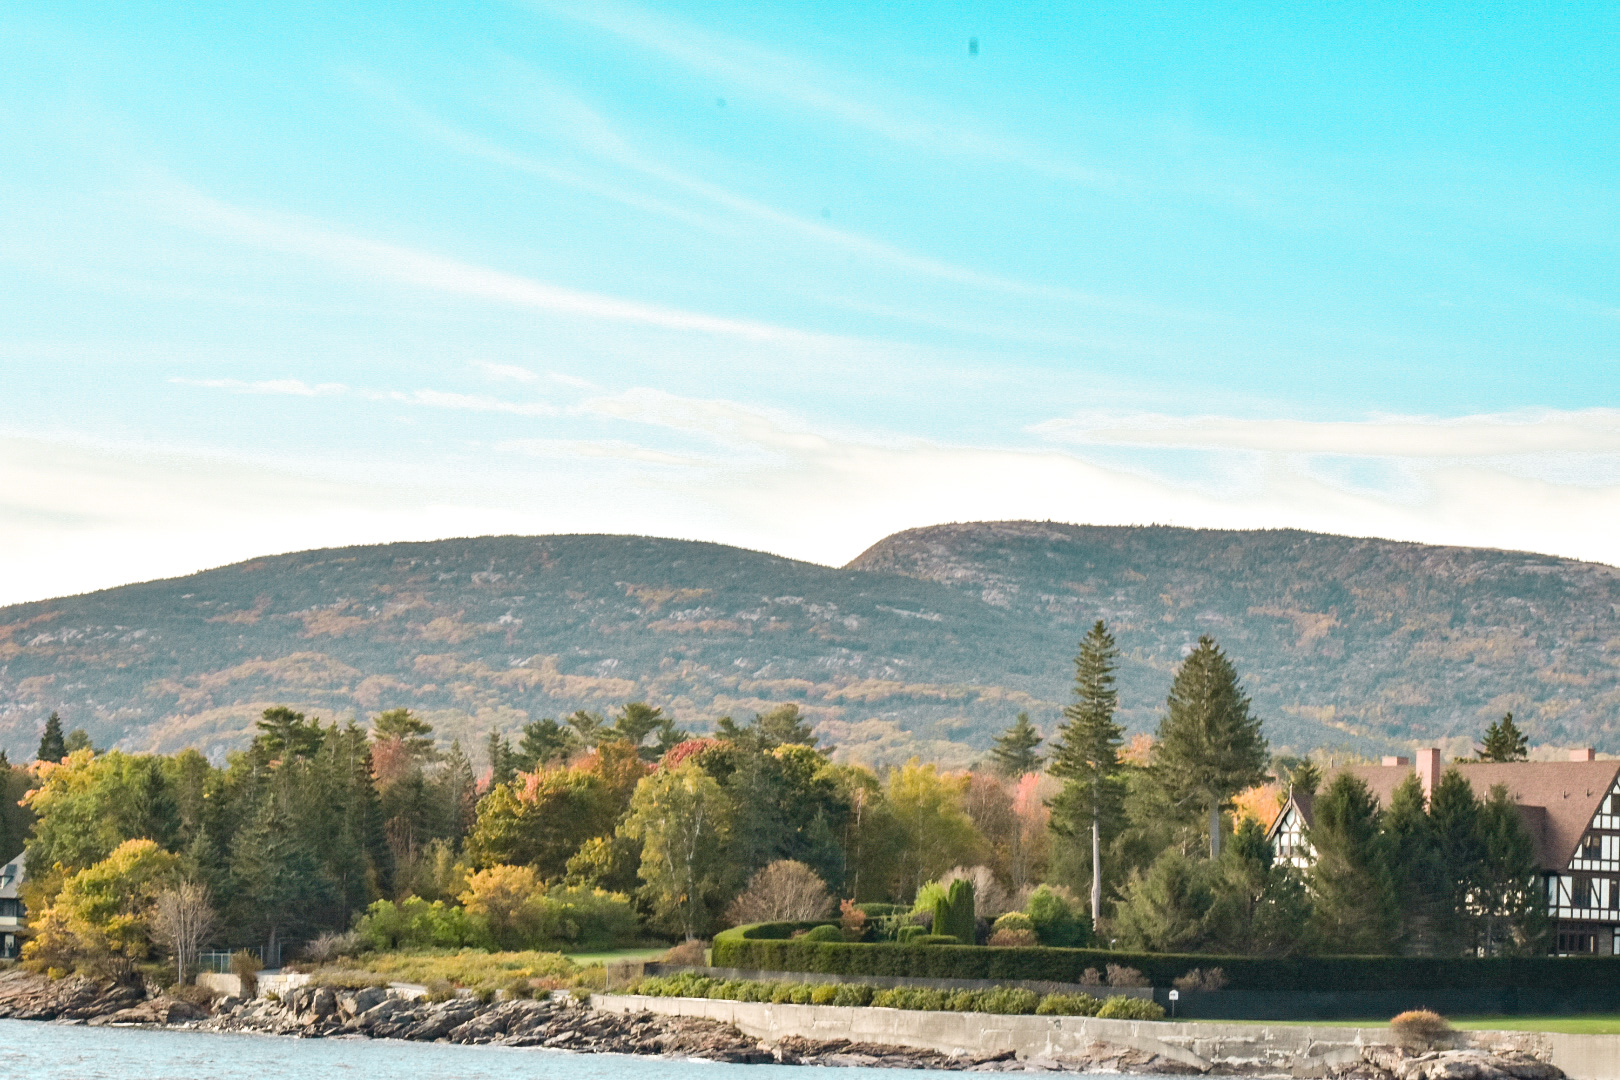 A shot of the mountain and fall foliage on MDI.